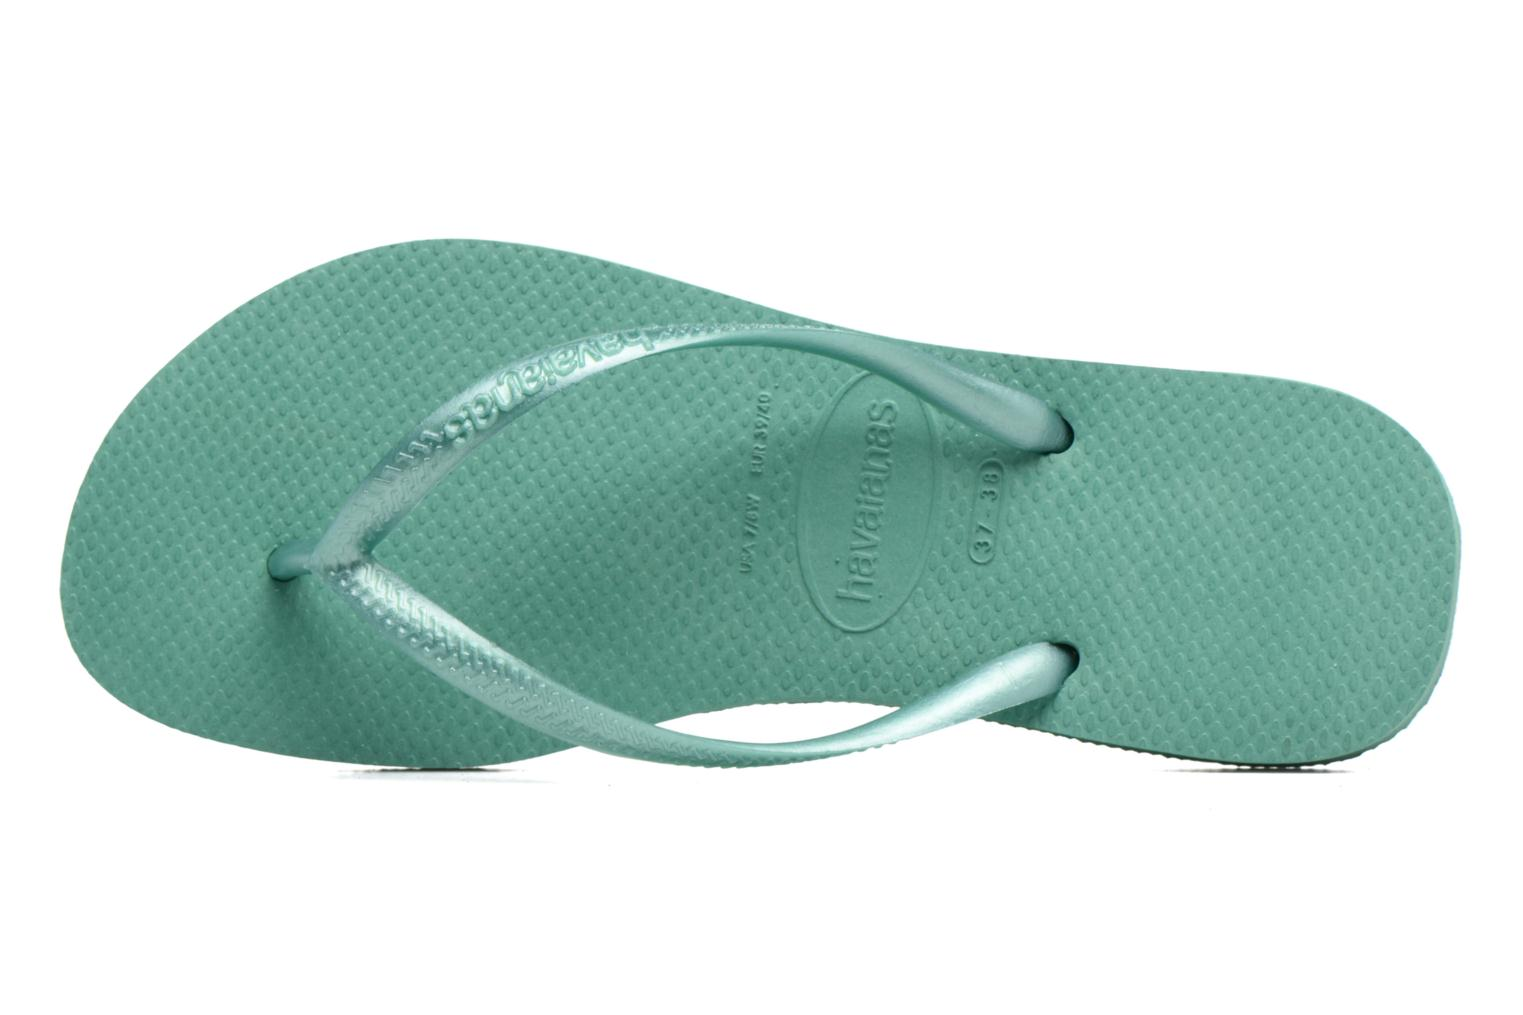 Flip flops Havaianas Slim Métallic Femme Green view from the left